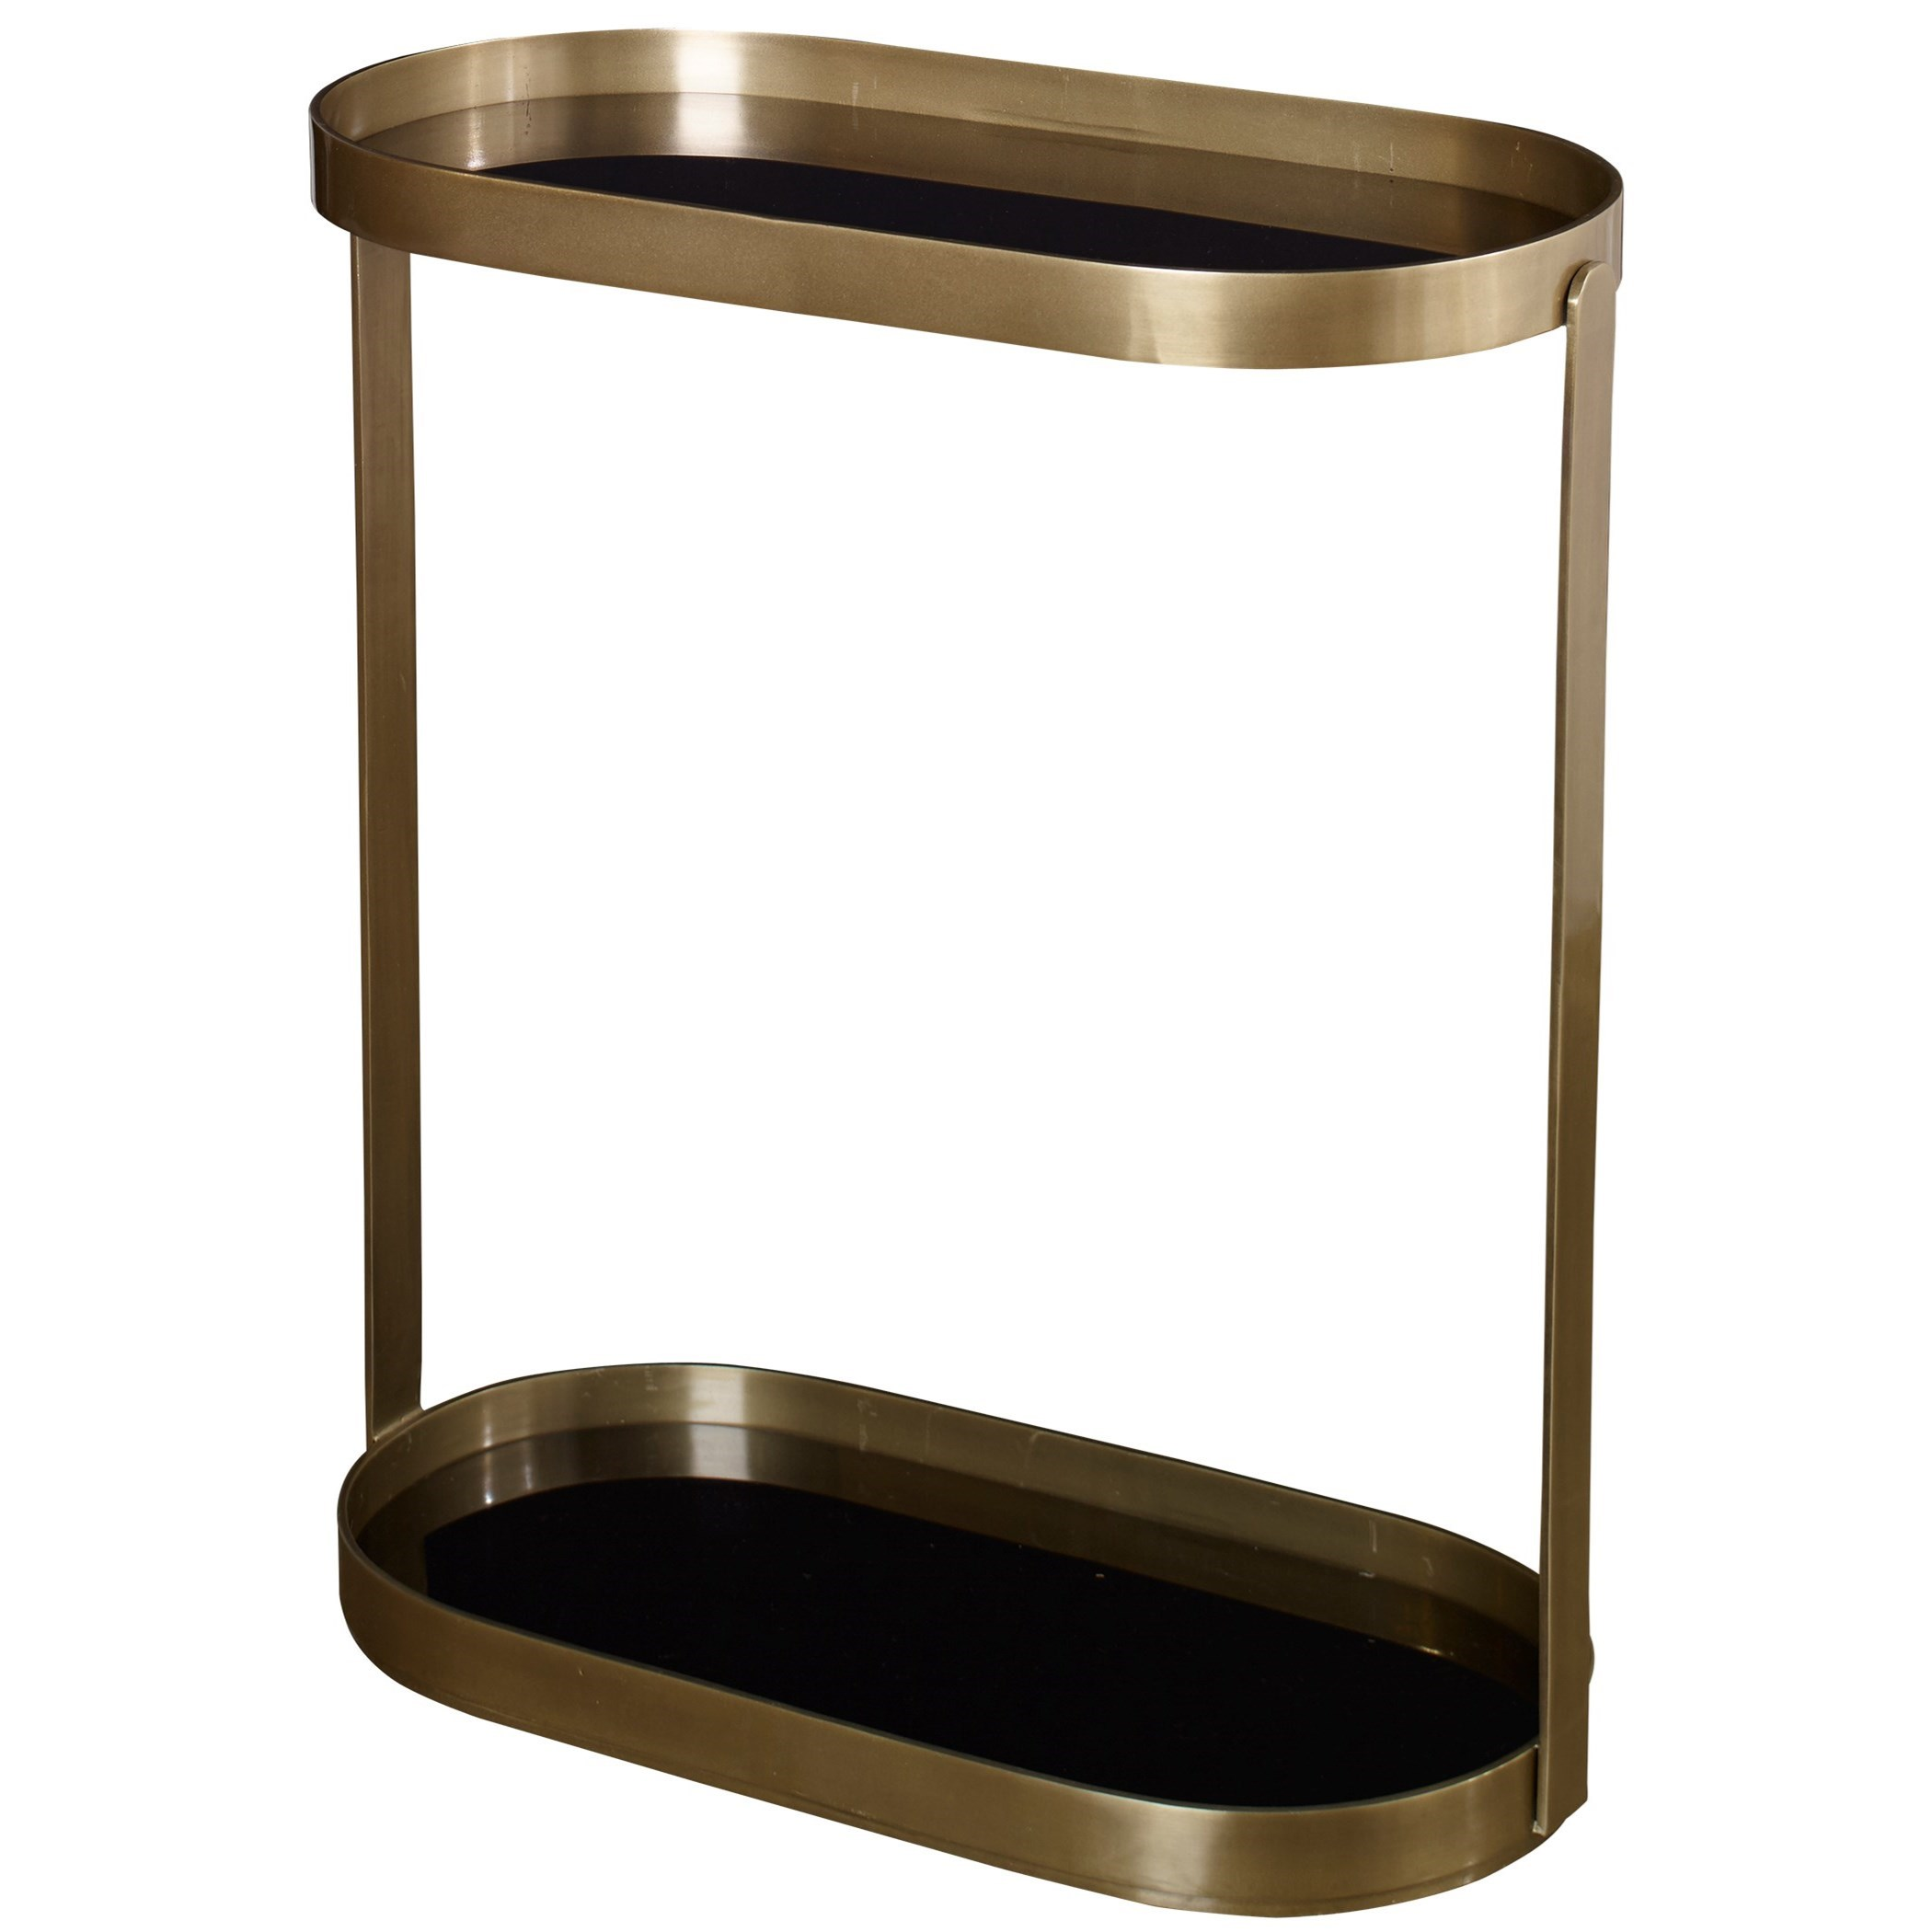 Accent Furniture - Occasional Tables Adia Antique Gold Side Table by Uttermost at Goffena Furniture & Mattress Center